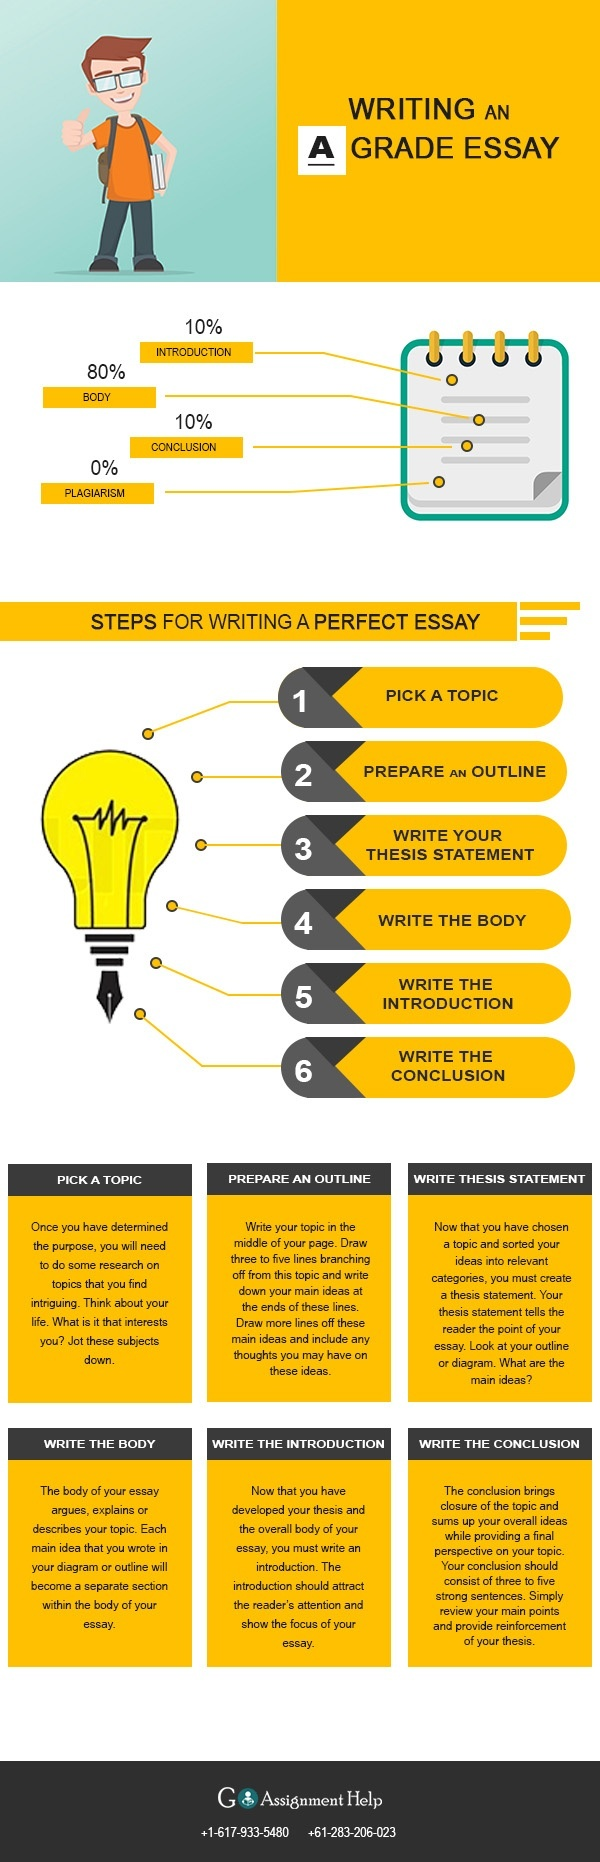 Essay On Judaism Here Is An Infographic Explaining  Steps For Writing An Essay To Score A  Grade Sport Essays also Sample Essay About School Essay Writing Tips How Do I Write A Topic Sentence In Essay Writing  Fast Custom Essay